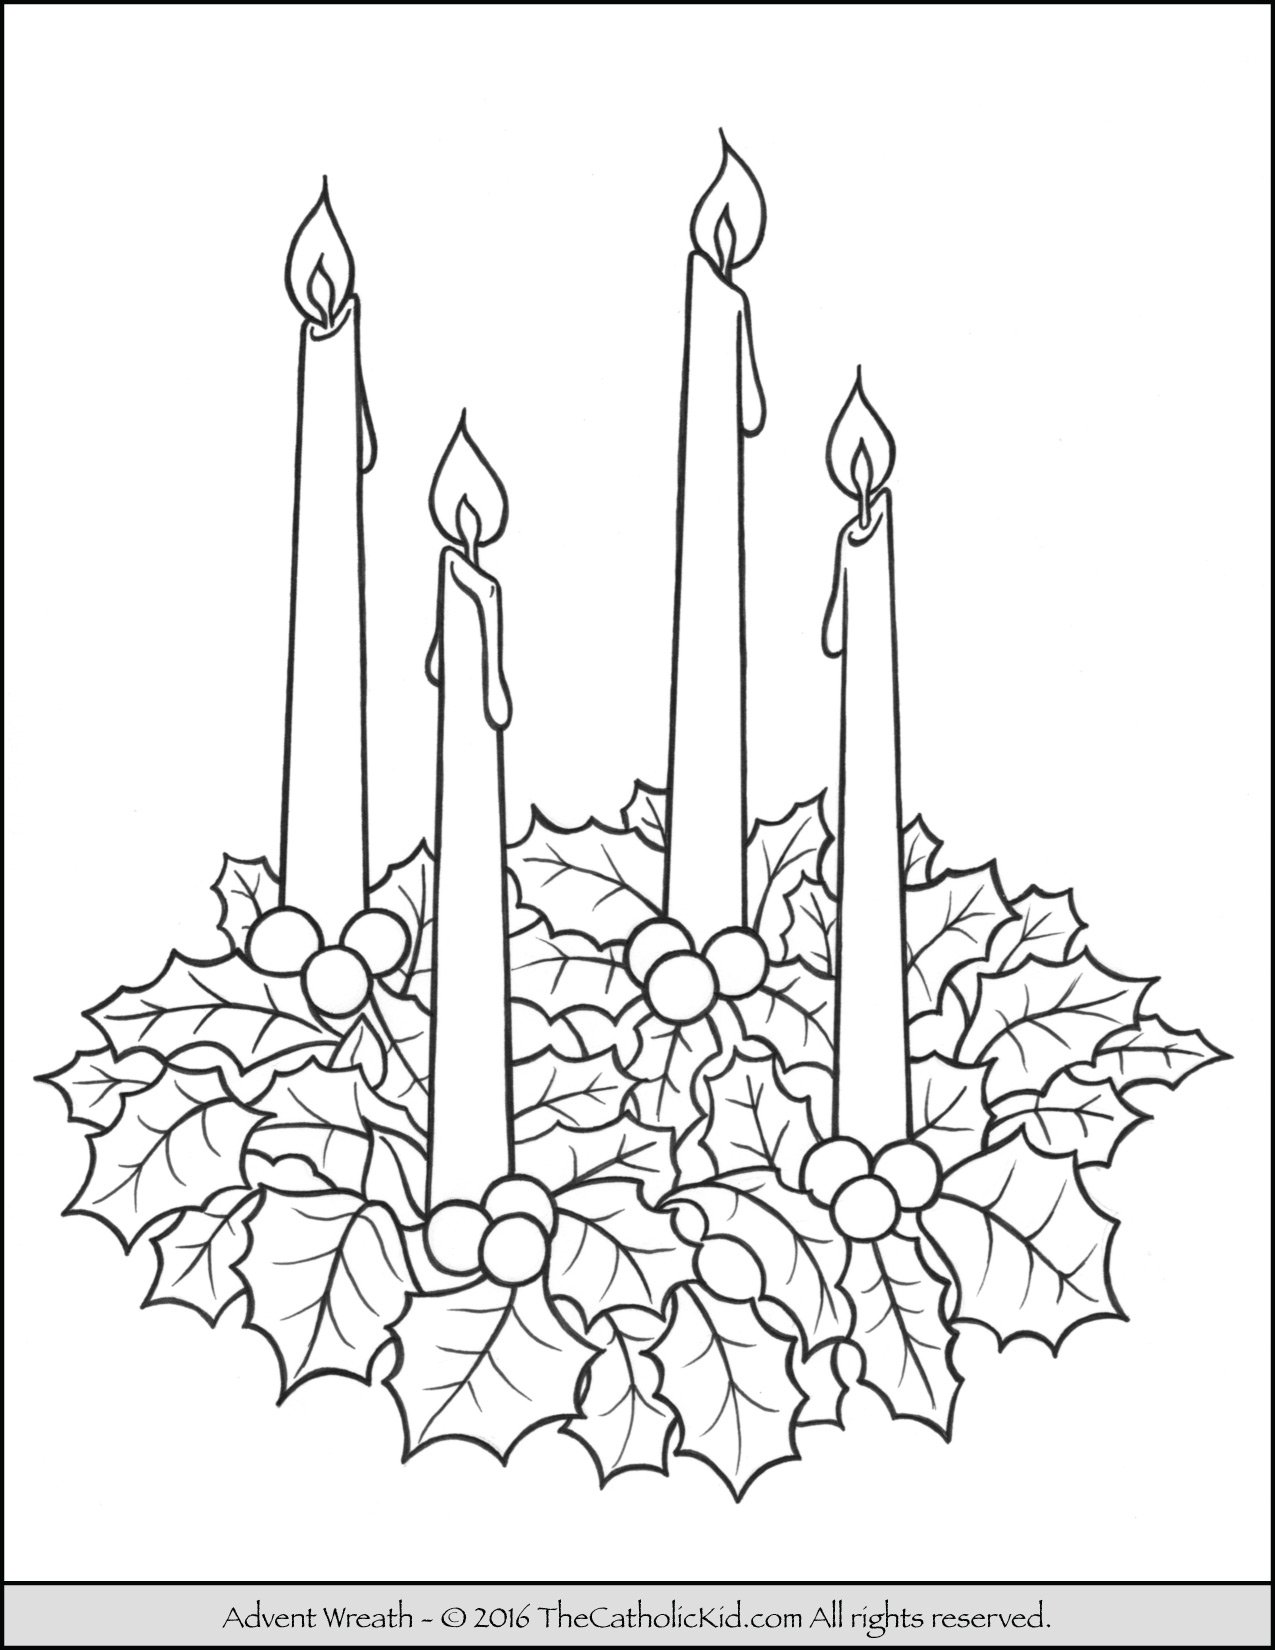 advent wreath coloring page - Wreath Coloring Page